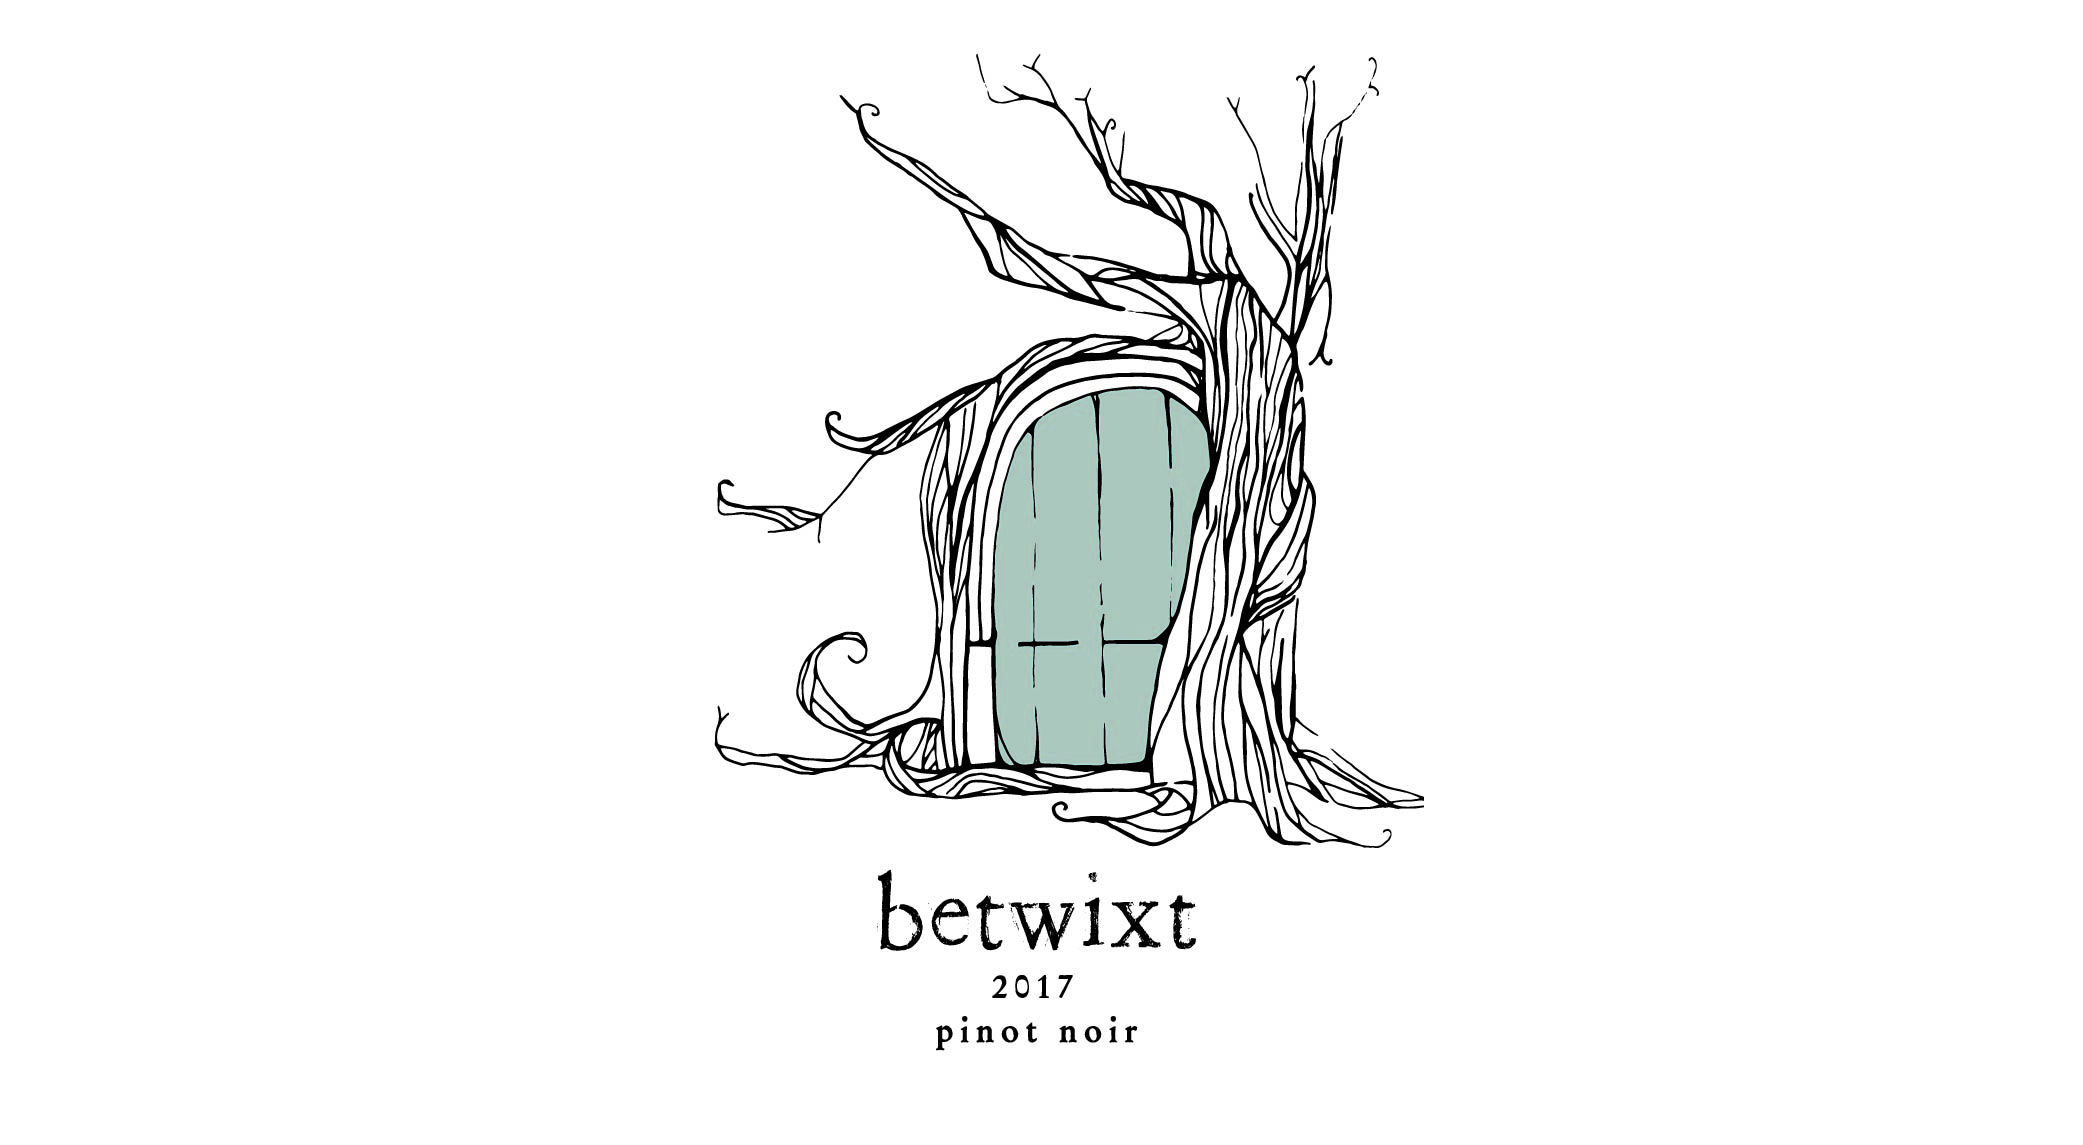 betwixt_lester_pinot_2017_whitebackground